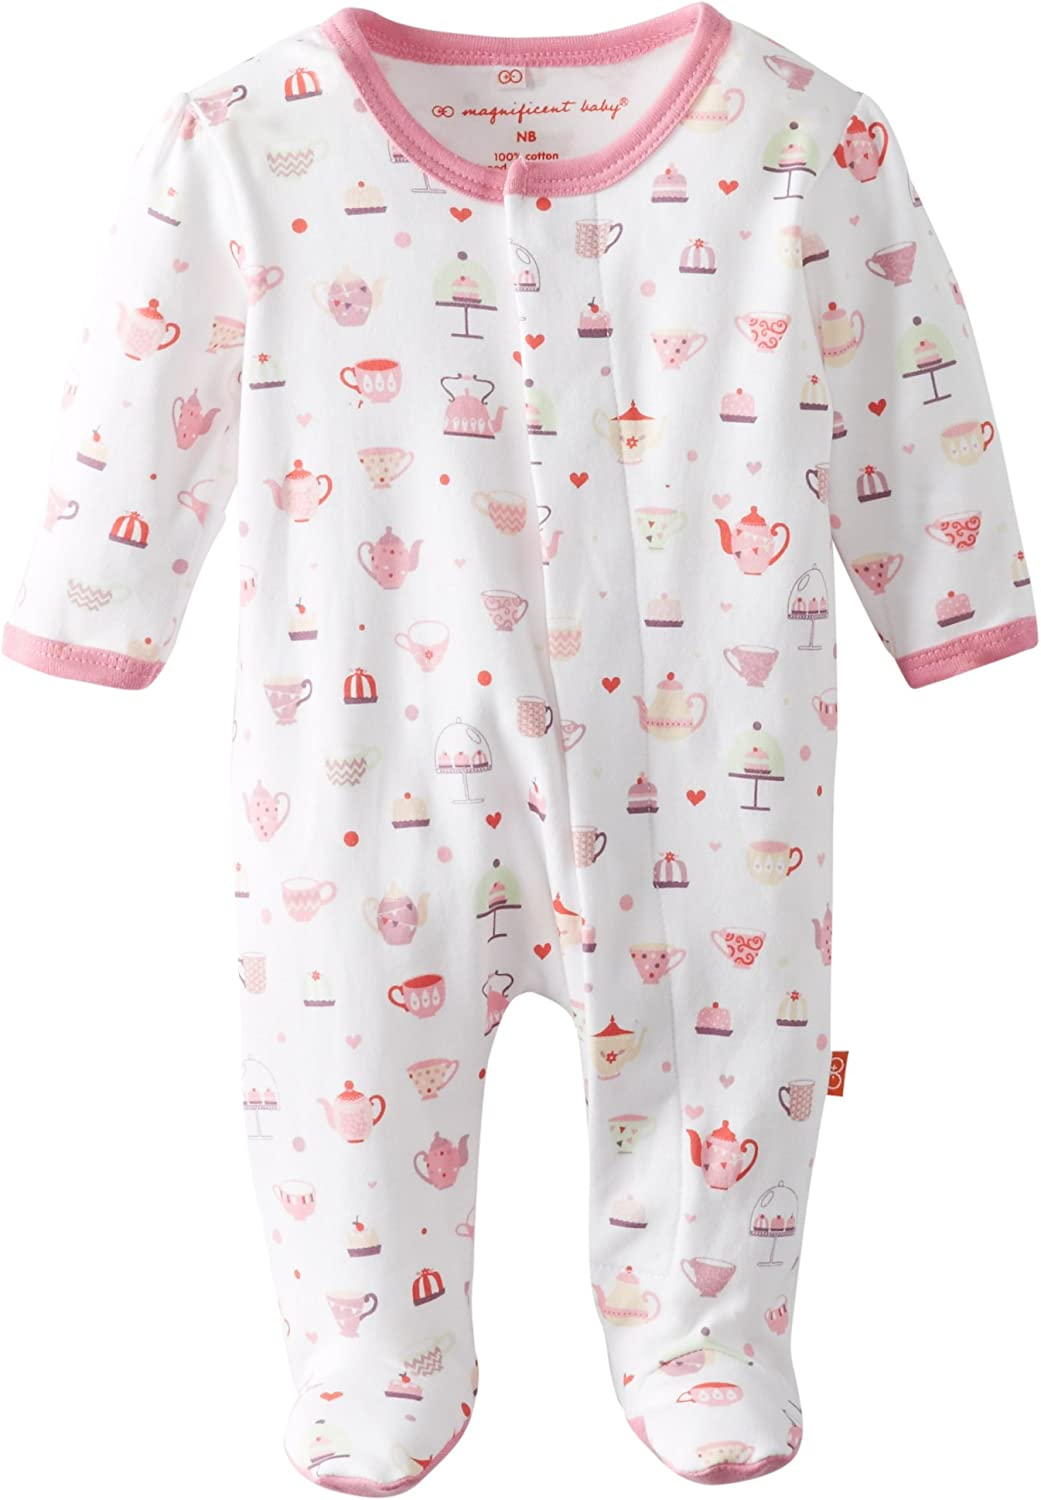 Magnificent Baby Unisex Newborn Footie